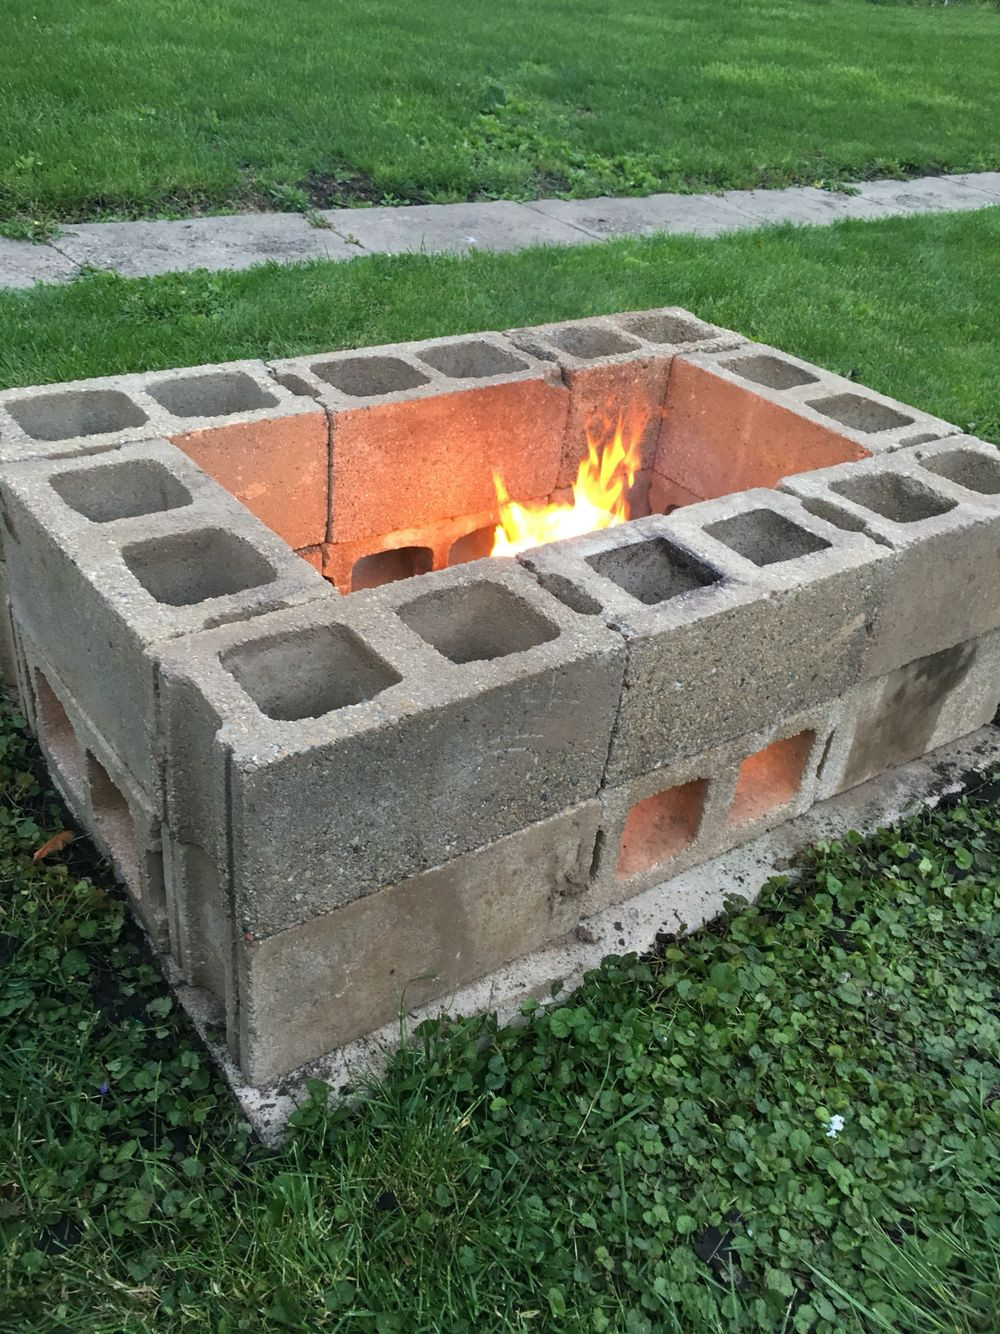 Best ideas about DIY Square Fire Pit . Save or Pin 15 Outstanding Cinder Block Fire Pit Design Ideas For Now.